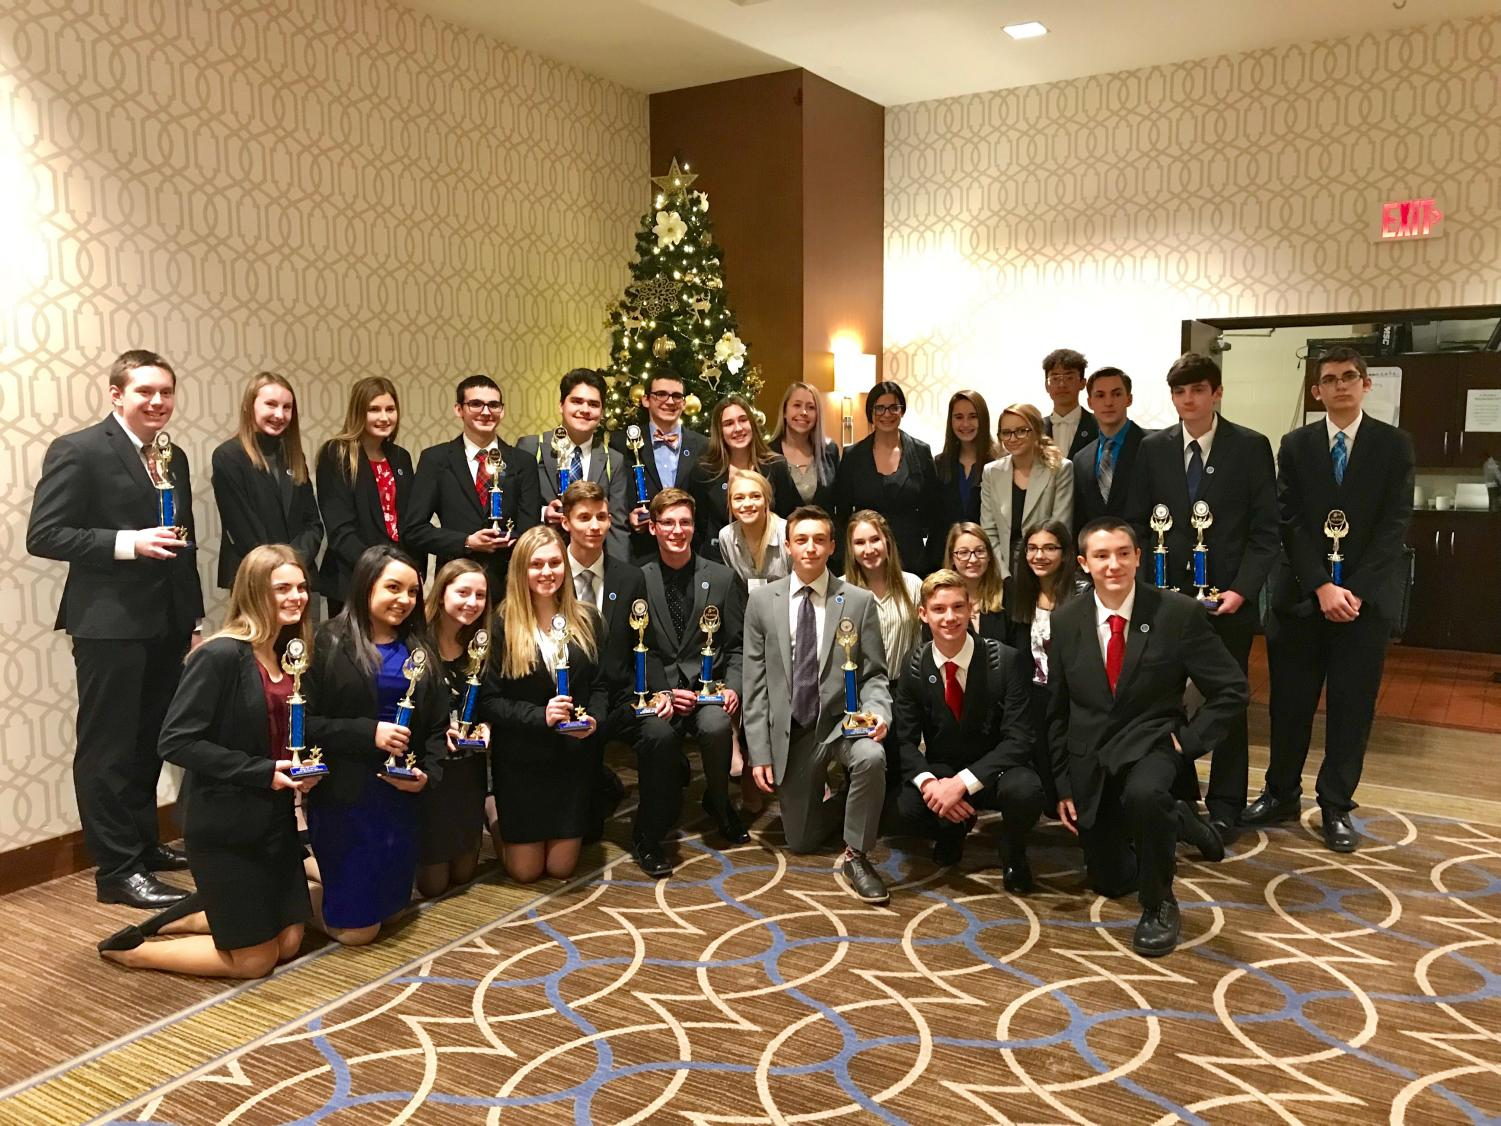 Thirty-one DECA members competed at the district competition on Dec. 3, which was held at the Sheraton Hotel near the Pittsburgh Airport. Thirteen of the 31 qualified to advance to states, which will take place in Hershey from Feb. 20 to Feb. 22.